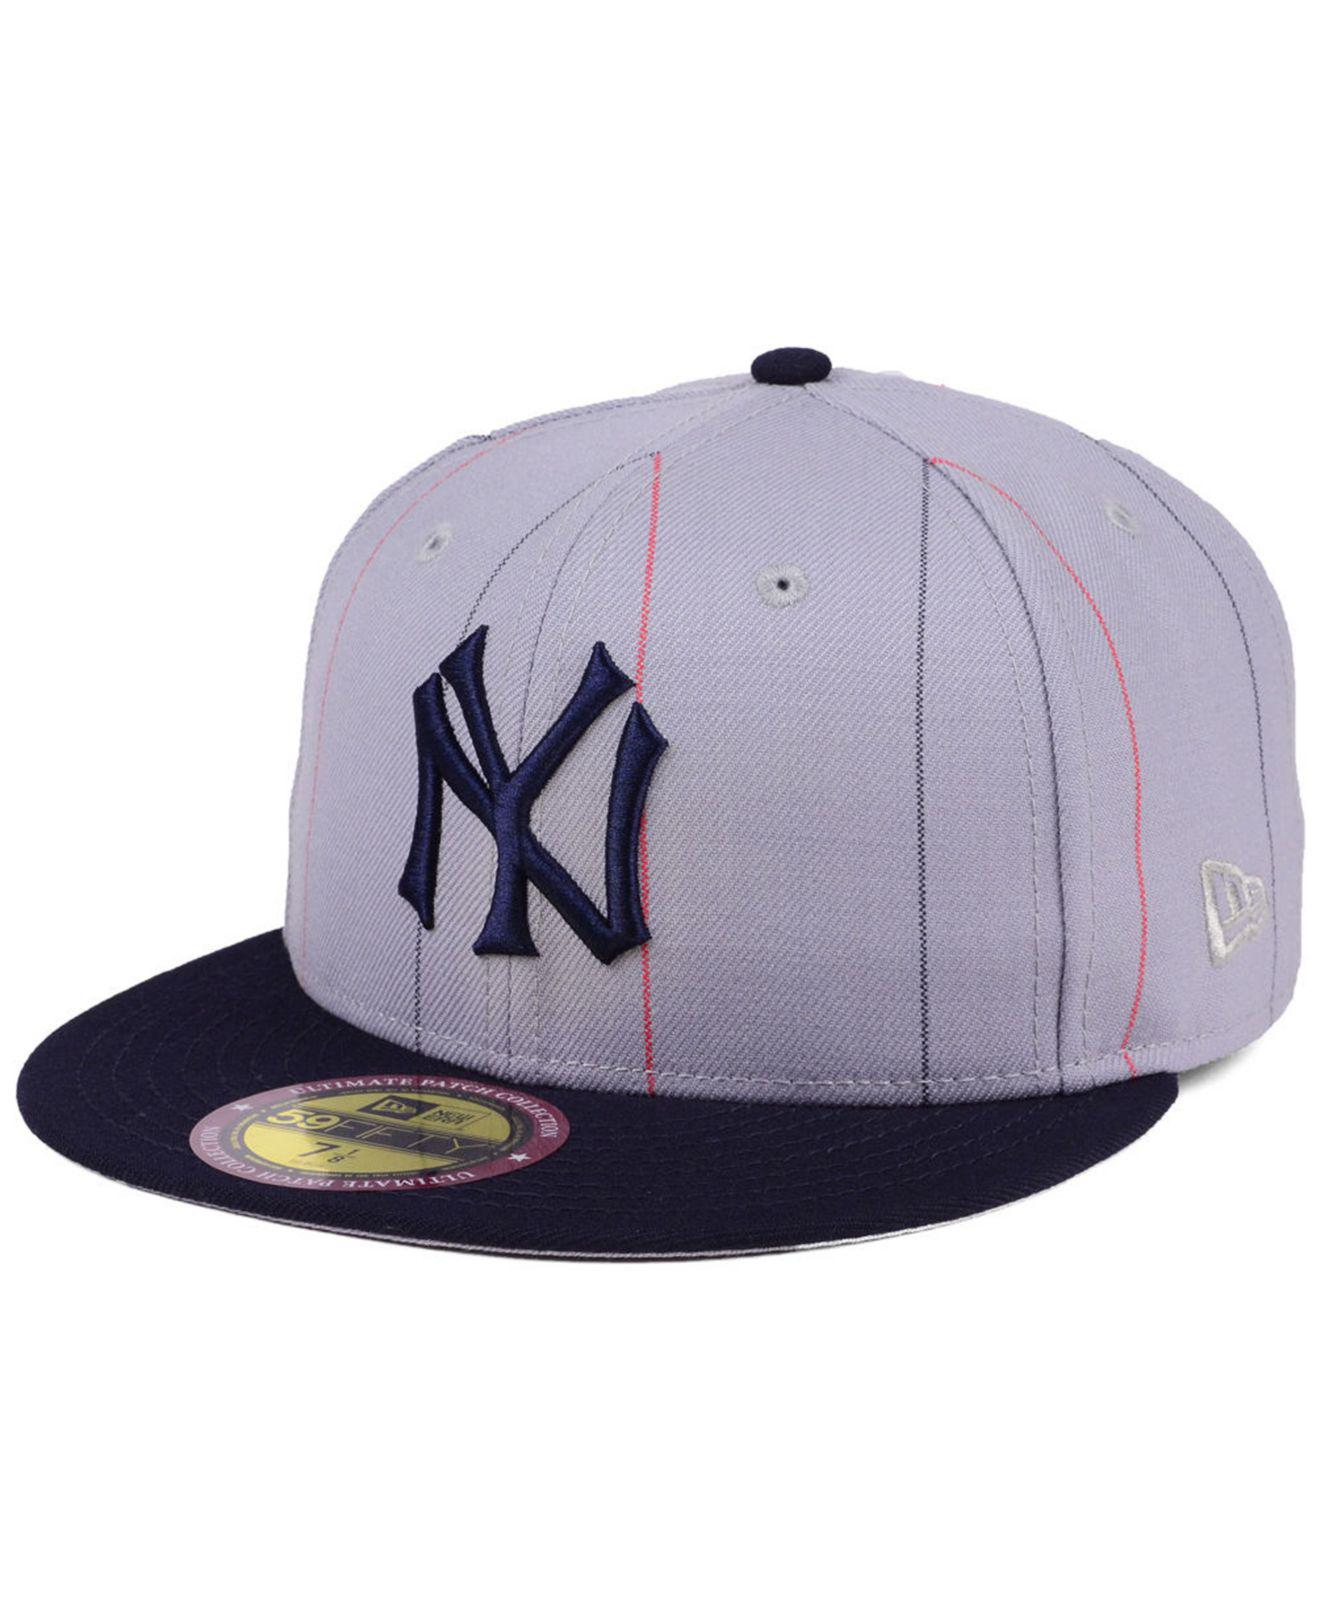 buy popular 1368f fd78d KTZ. Men s Blue Ultimate Patch Collection Anniversary 59fifty Cap